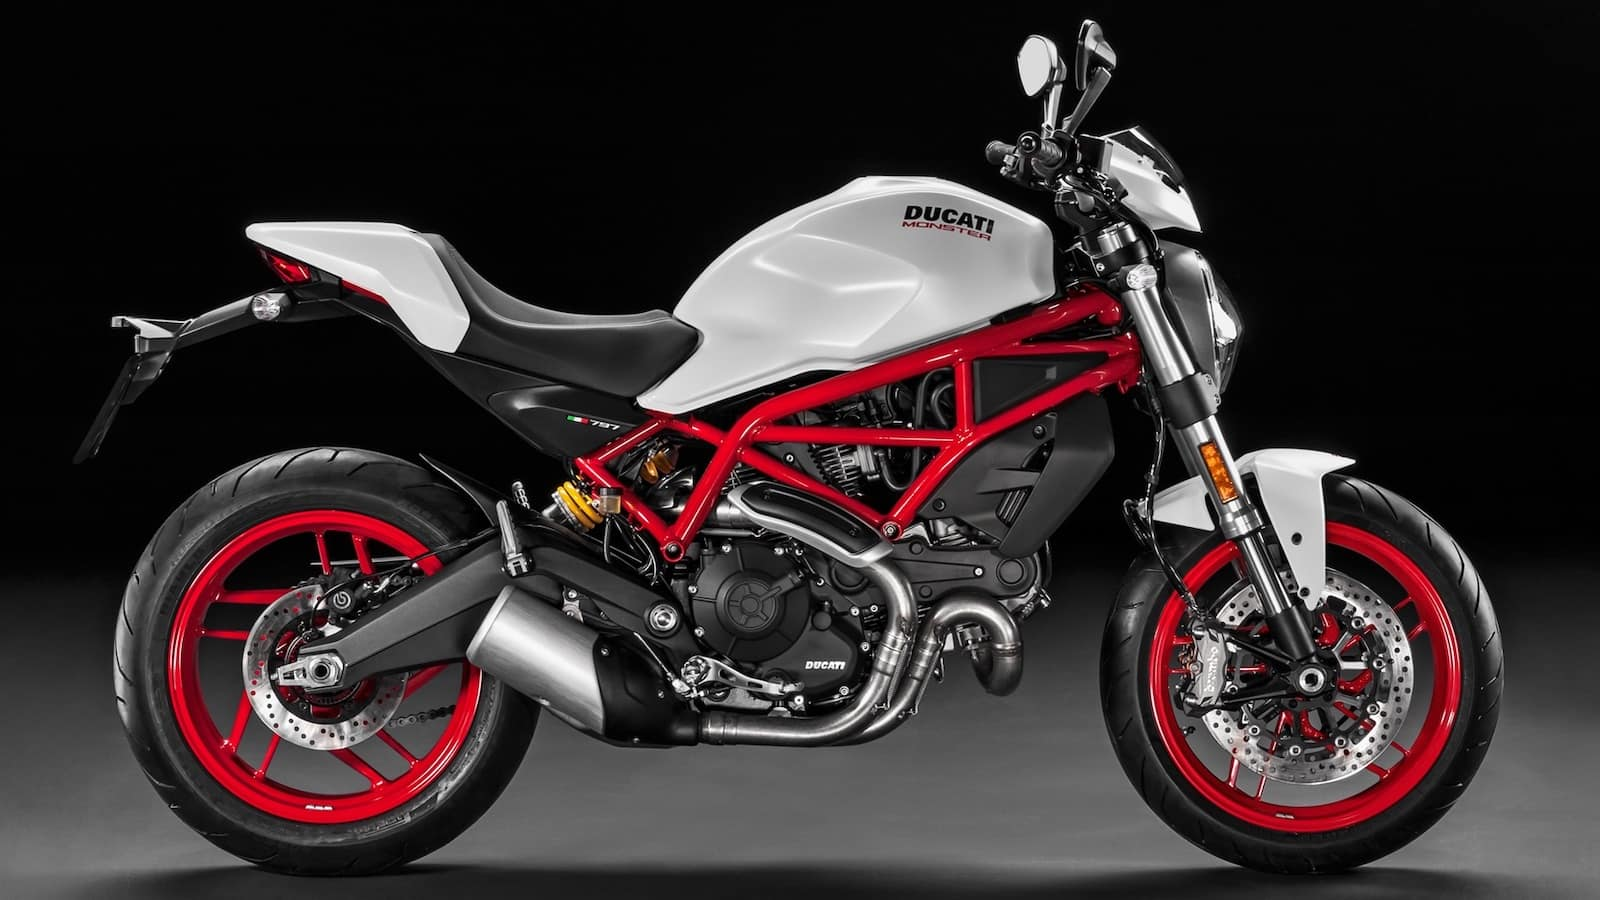 Guide to Buying a Ducati Monster